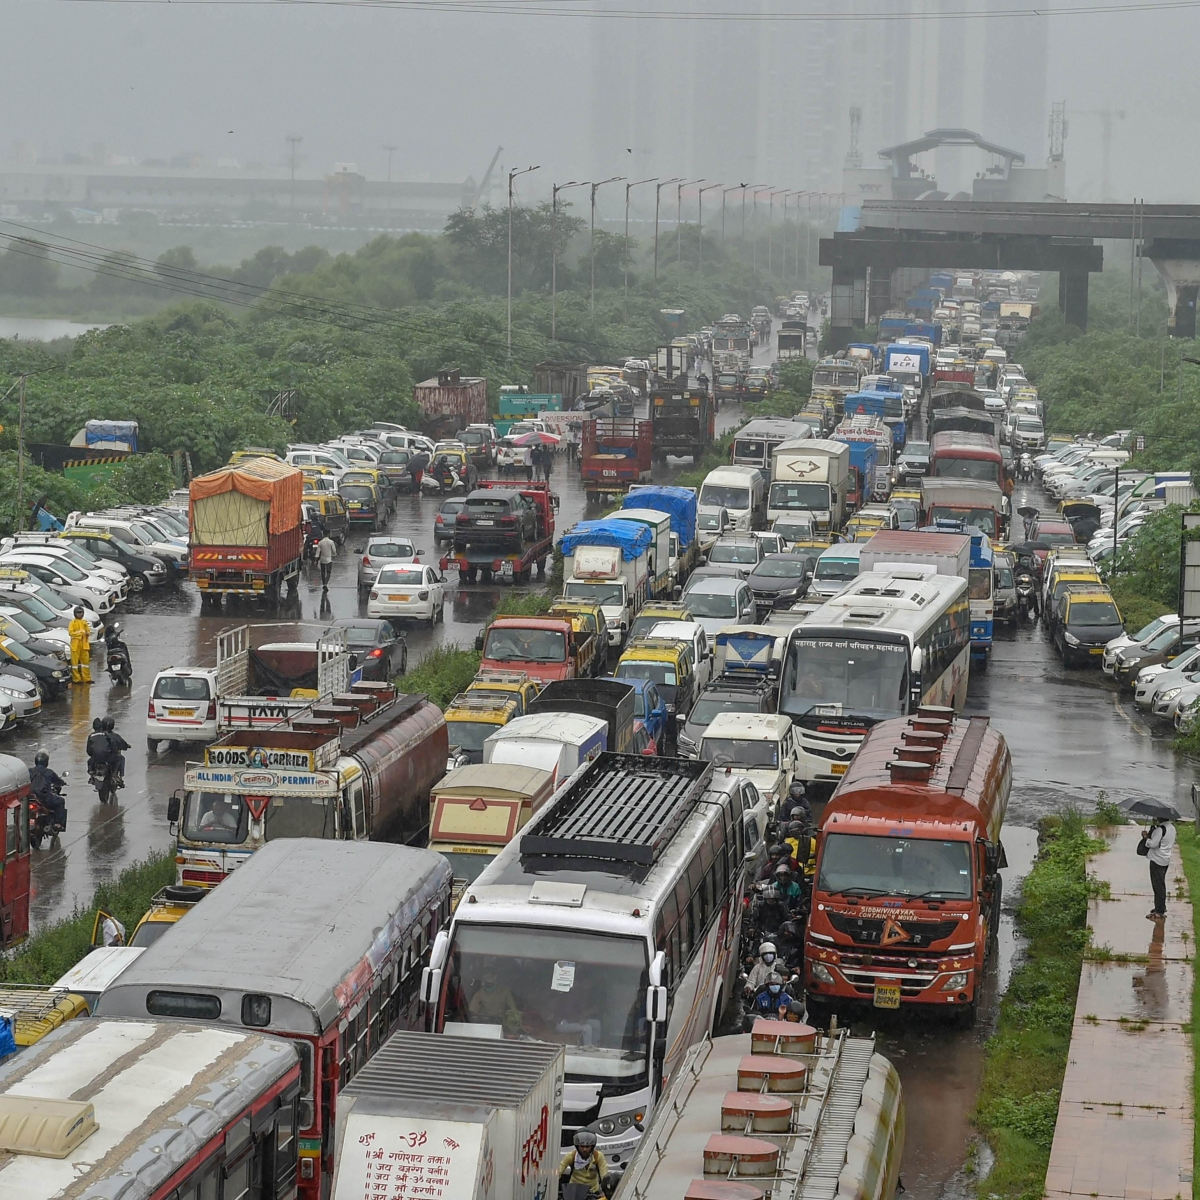 'Took me 3.5 hrs to cover 1km': Twitter user slams authorities for traffic woes amid heavy rains in Mumbai